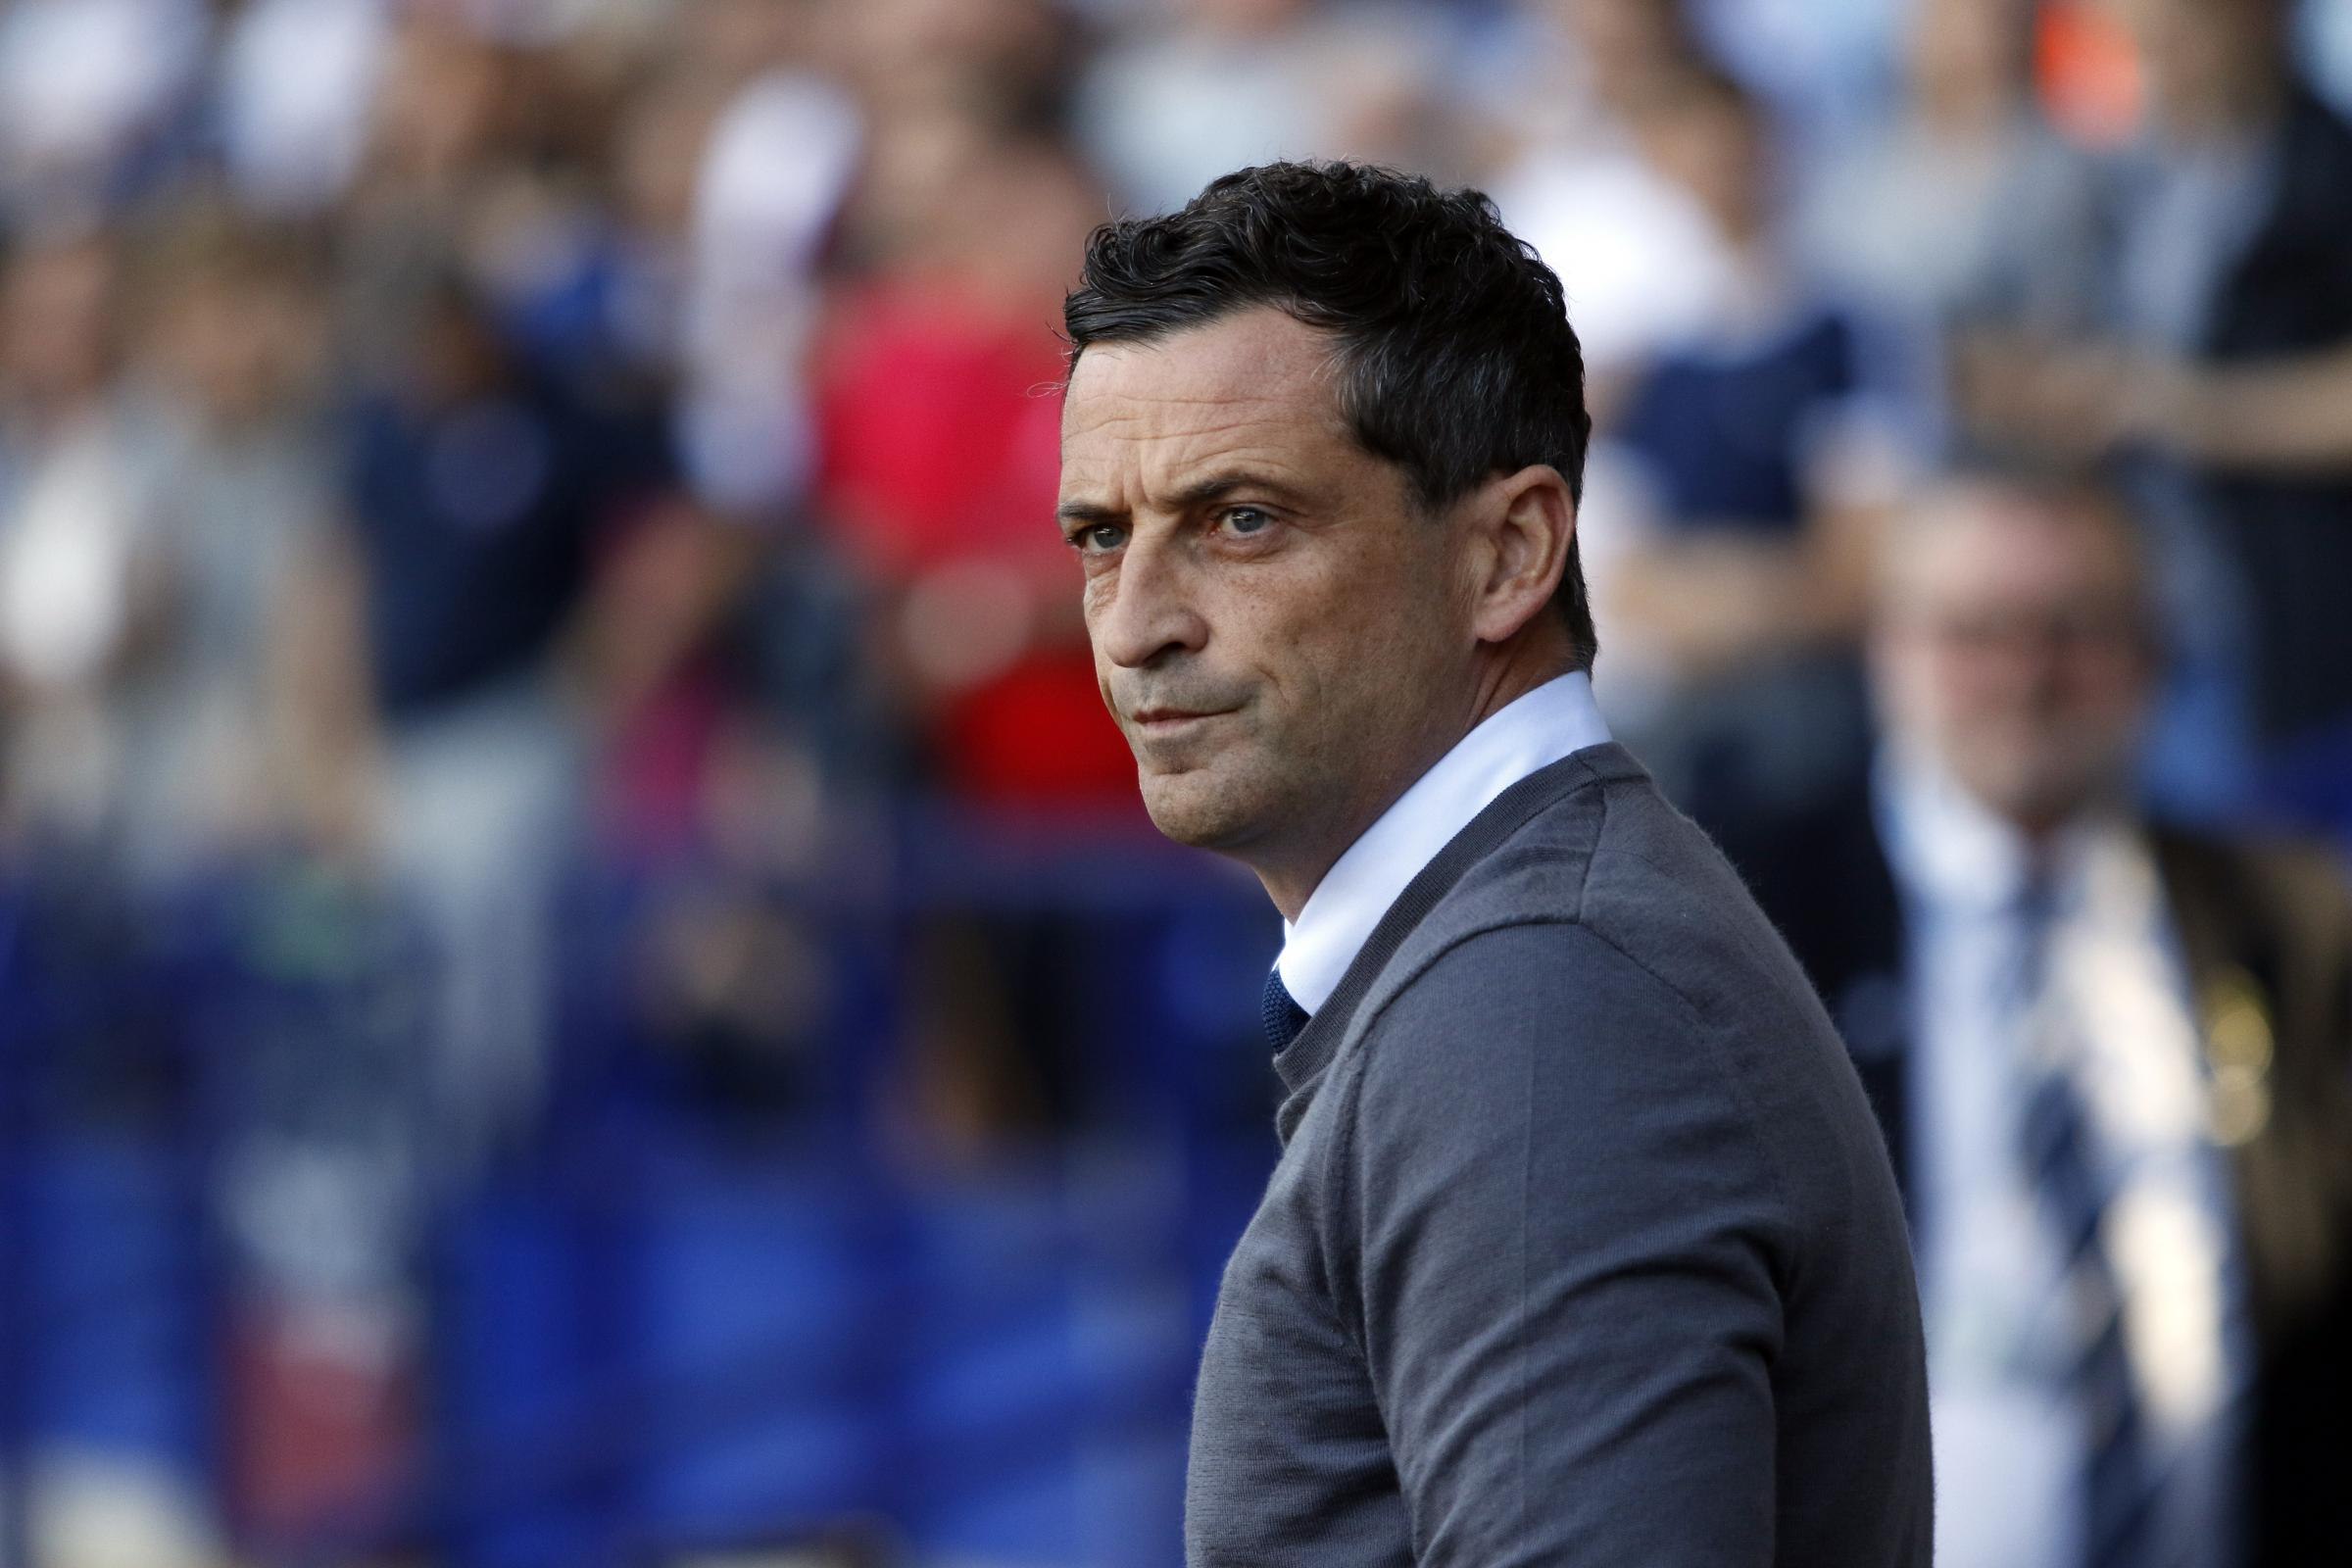 Jack Ross appointed as new Hibernian manager on a three-and-a-half-year deal